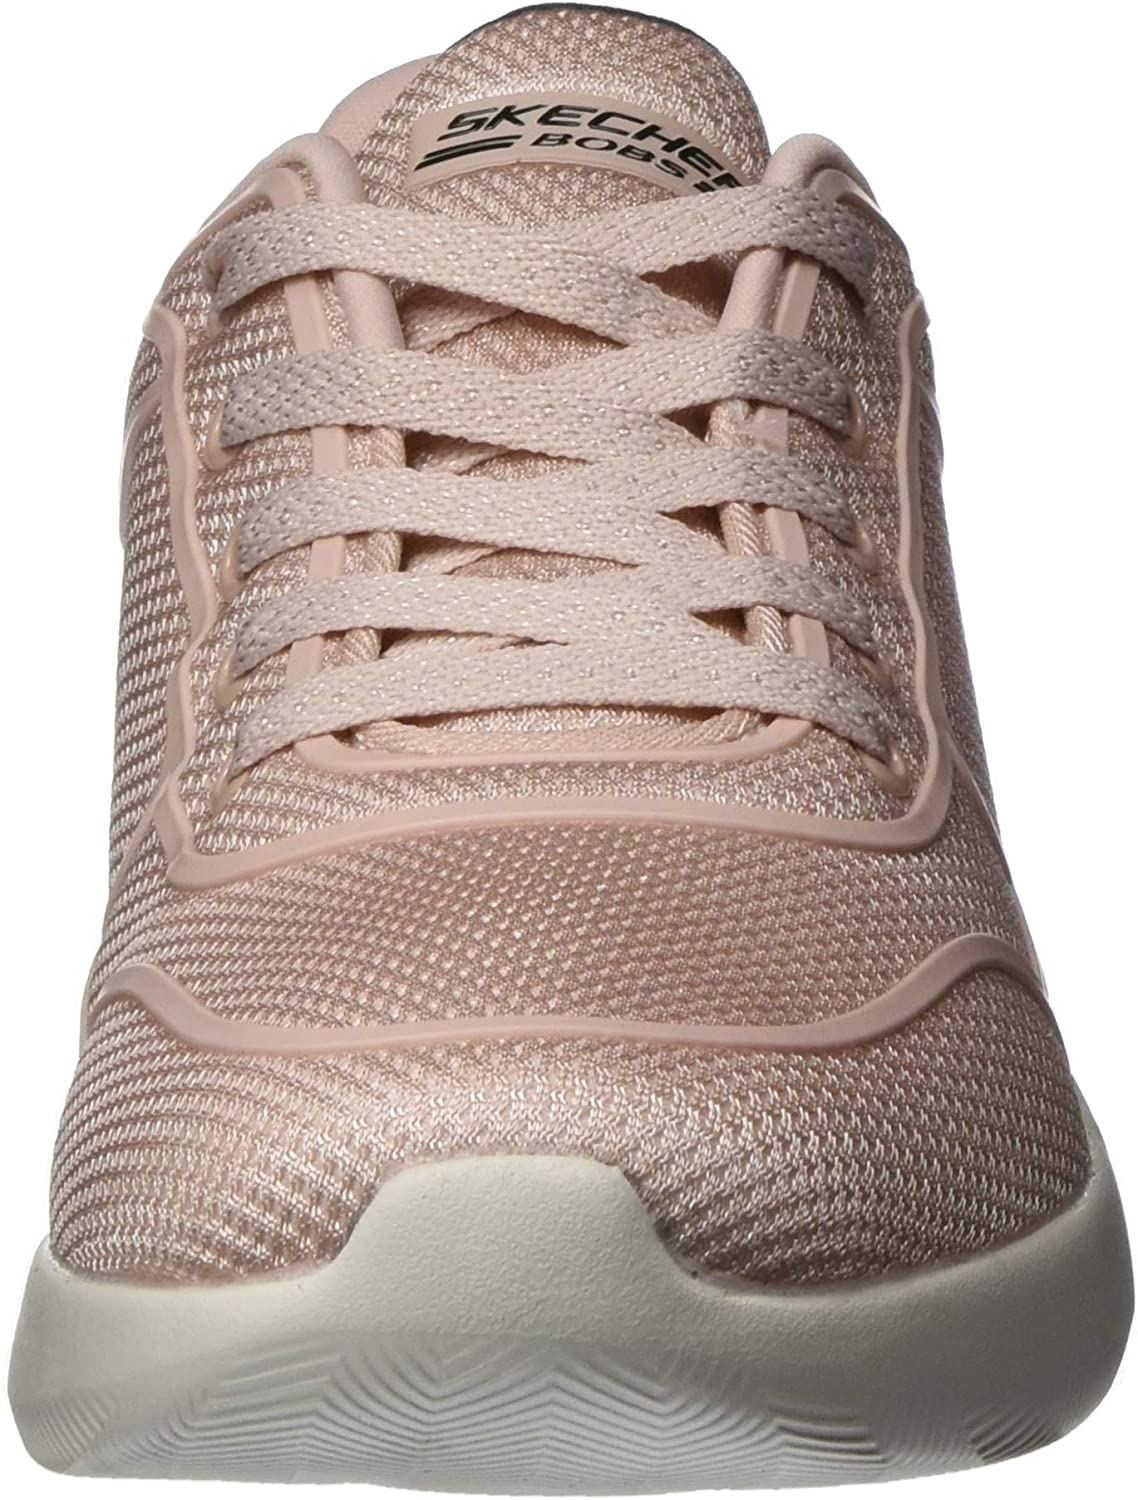 Skechers Bobs Squad 2, Sneaker Donna Rosa Blush Engineered Knit Black Trim Blush